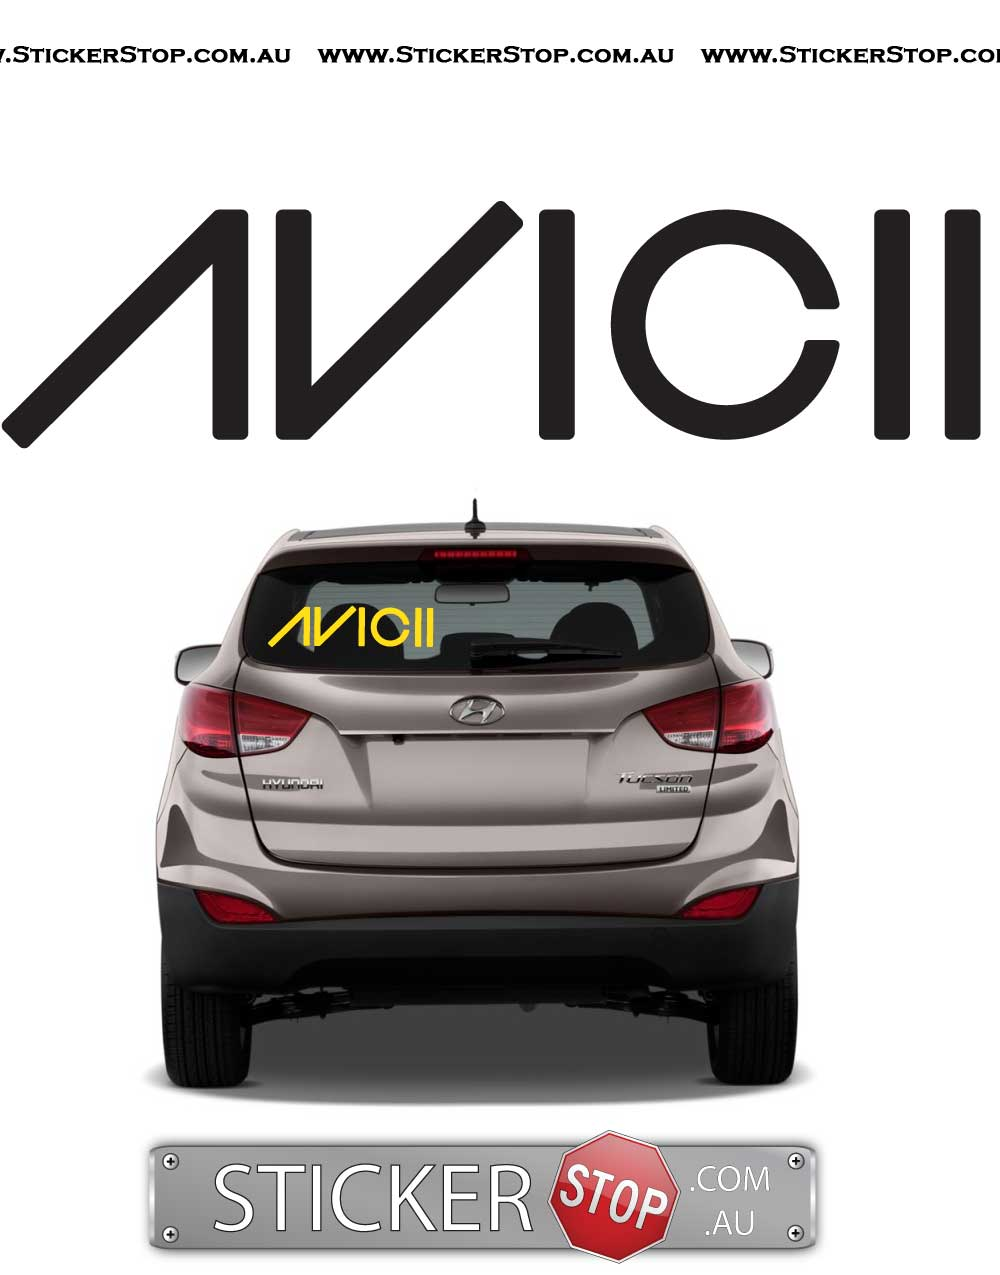 Avicii DJ Sticker Vinyl Decal